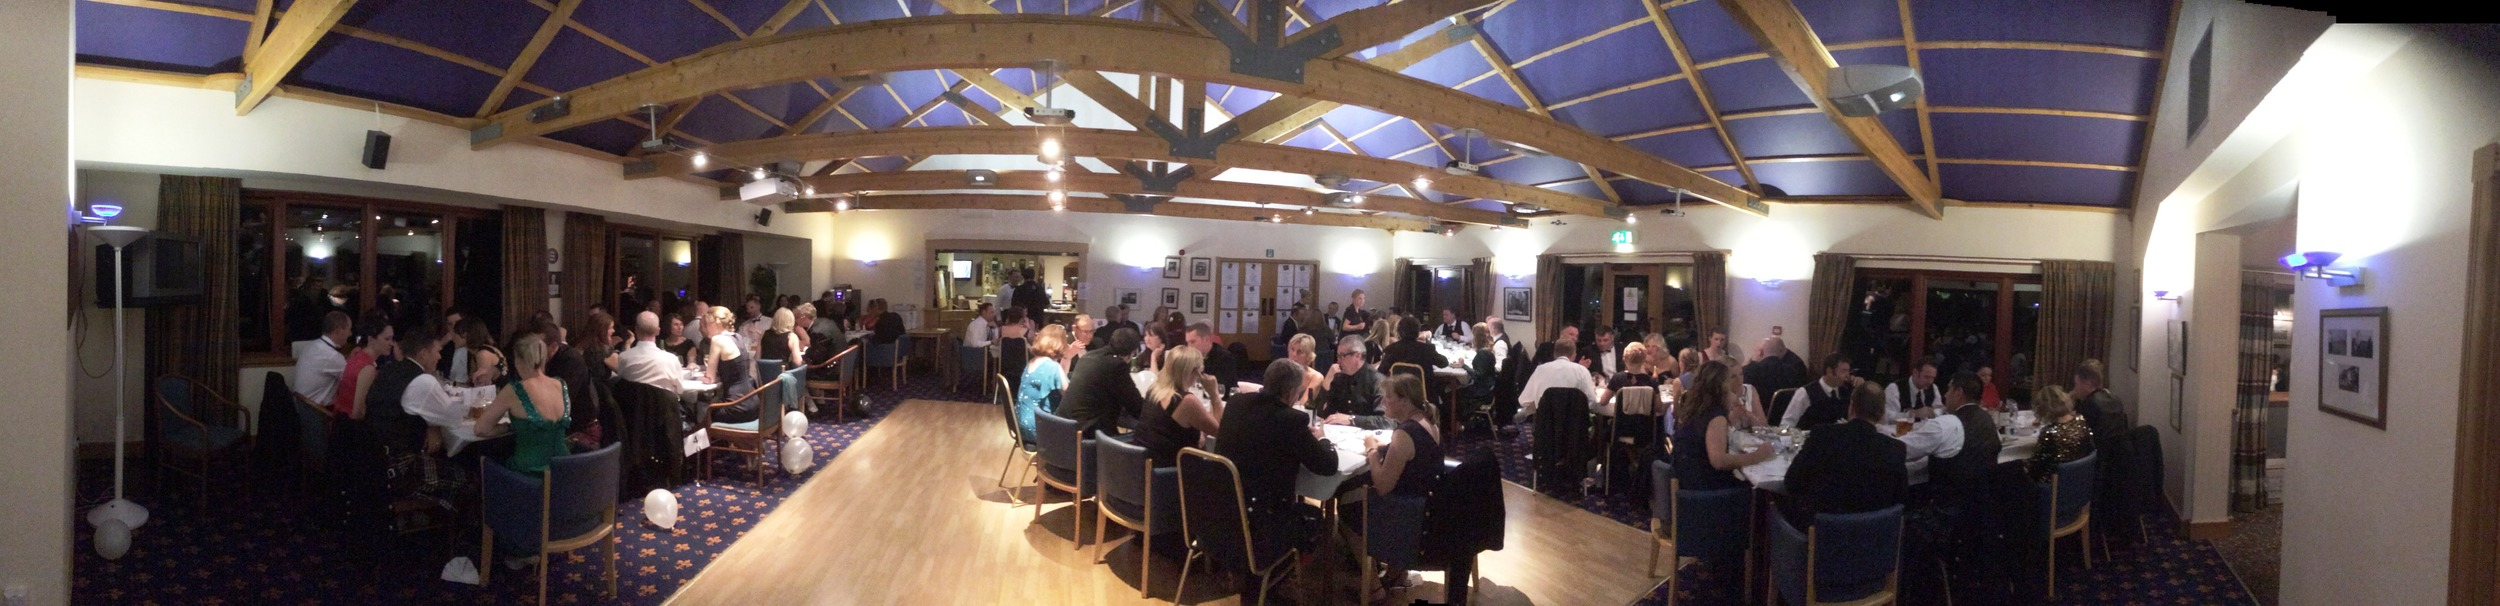 The Odd Shaped Ball raised £3,000 for junior sport and attracted a packed clubhouse of more than 100 guests